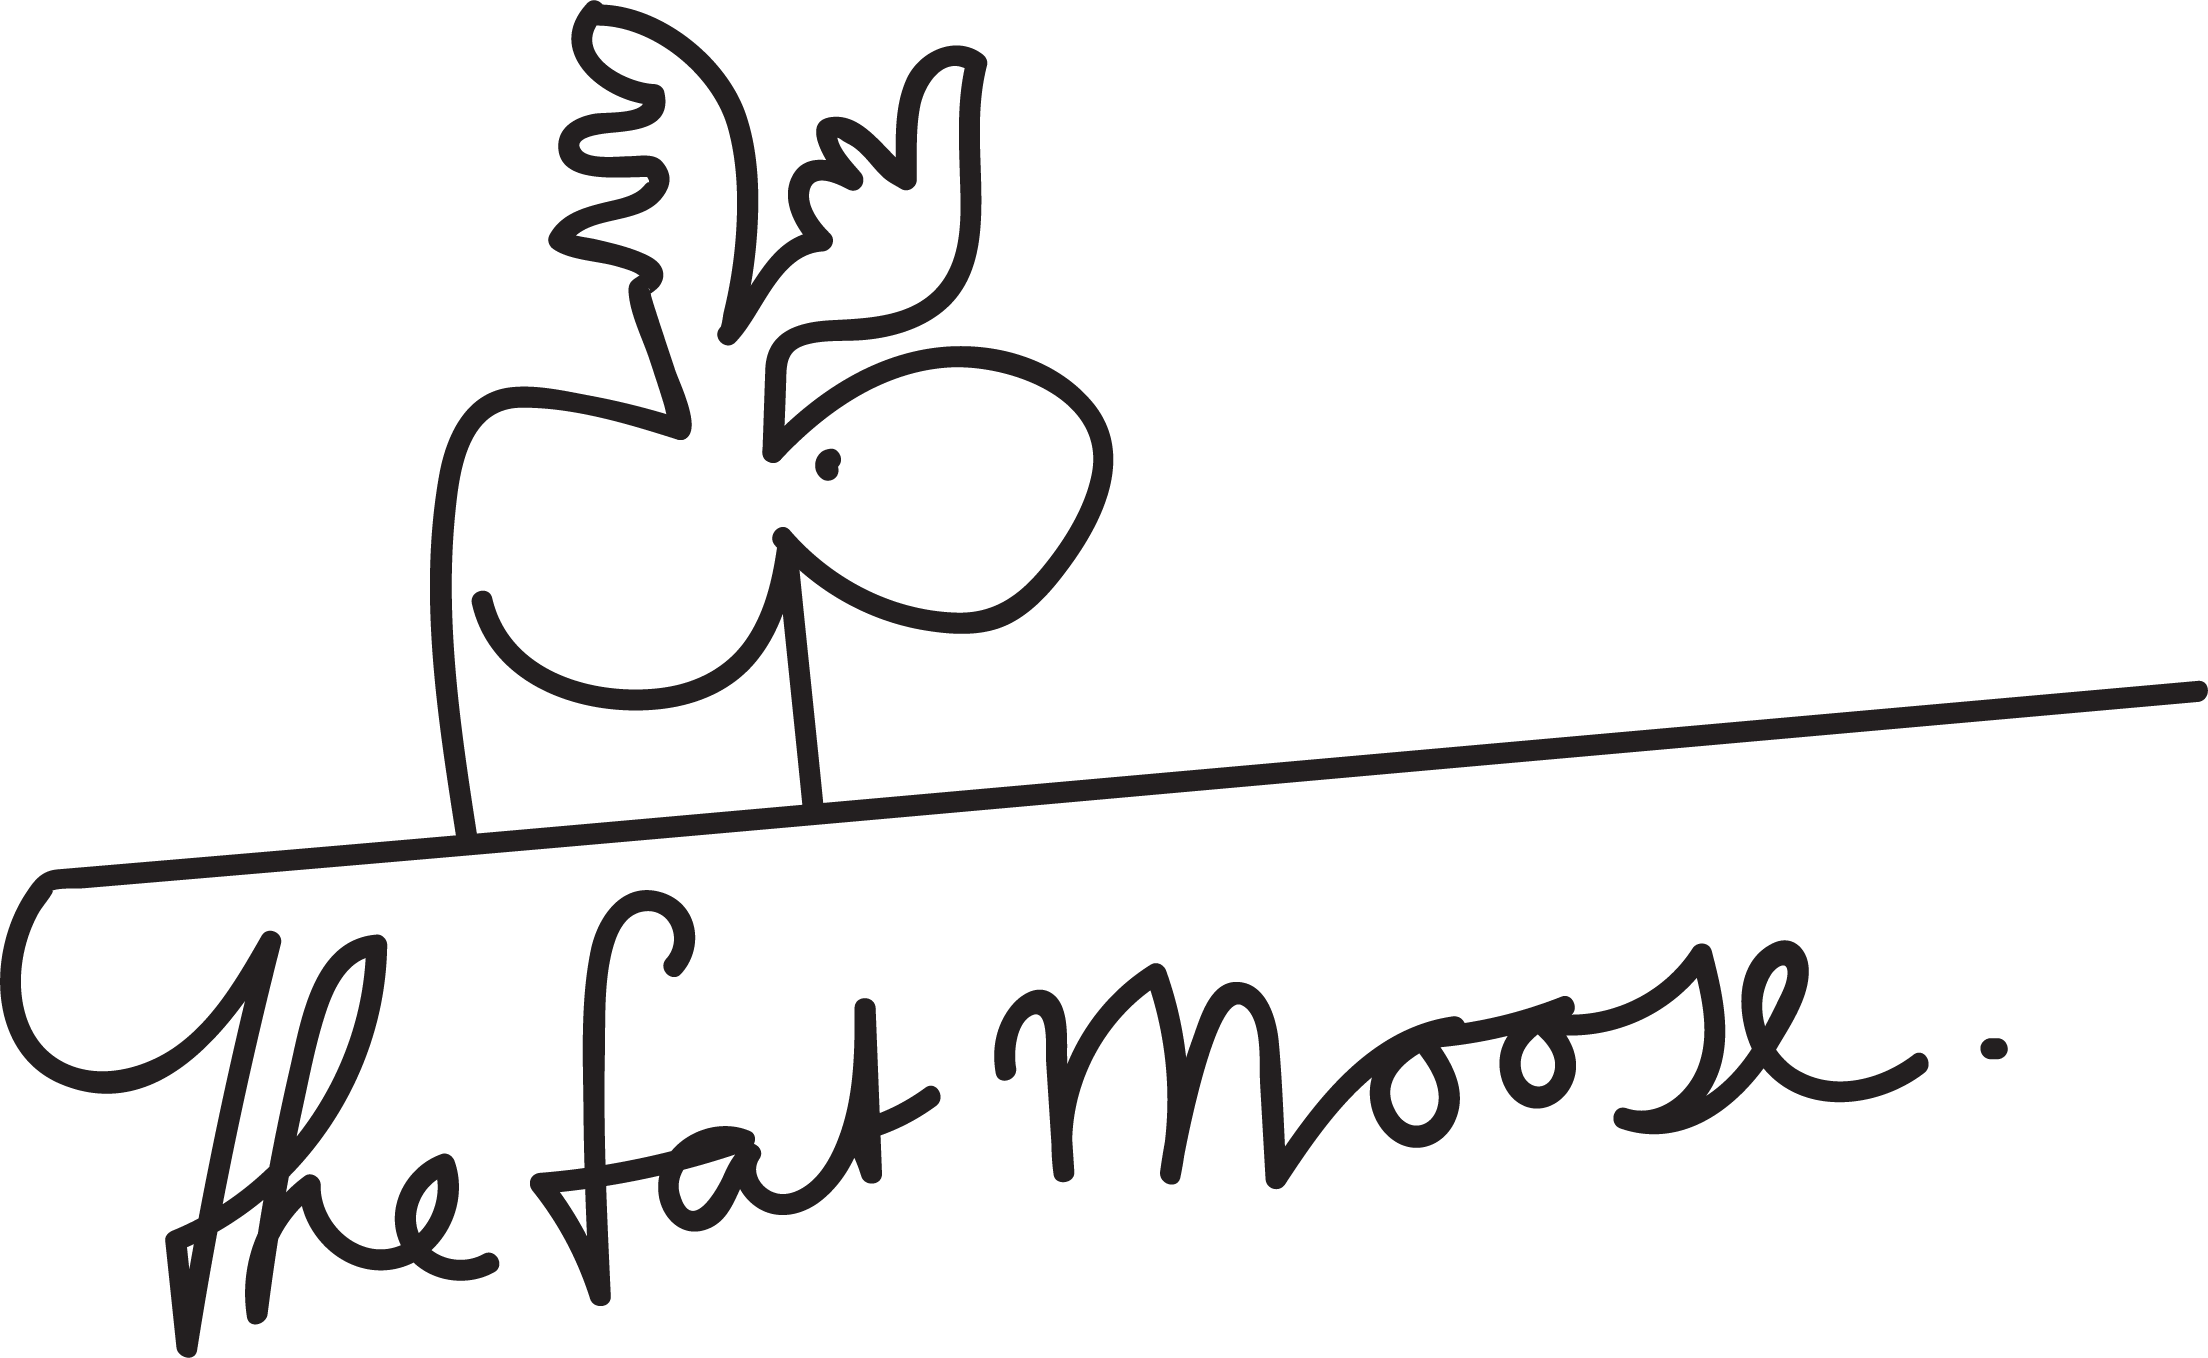 The Fat Moose